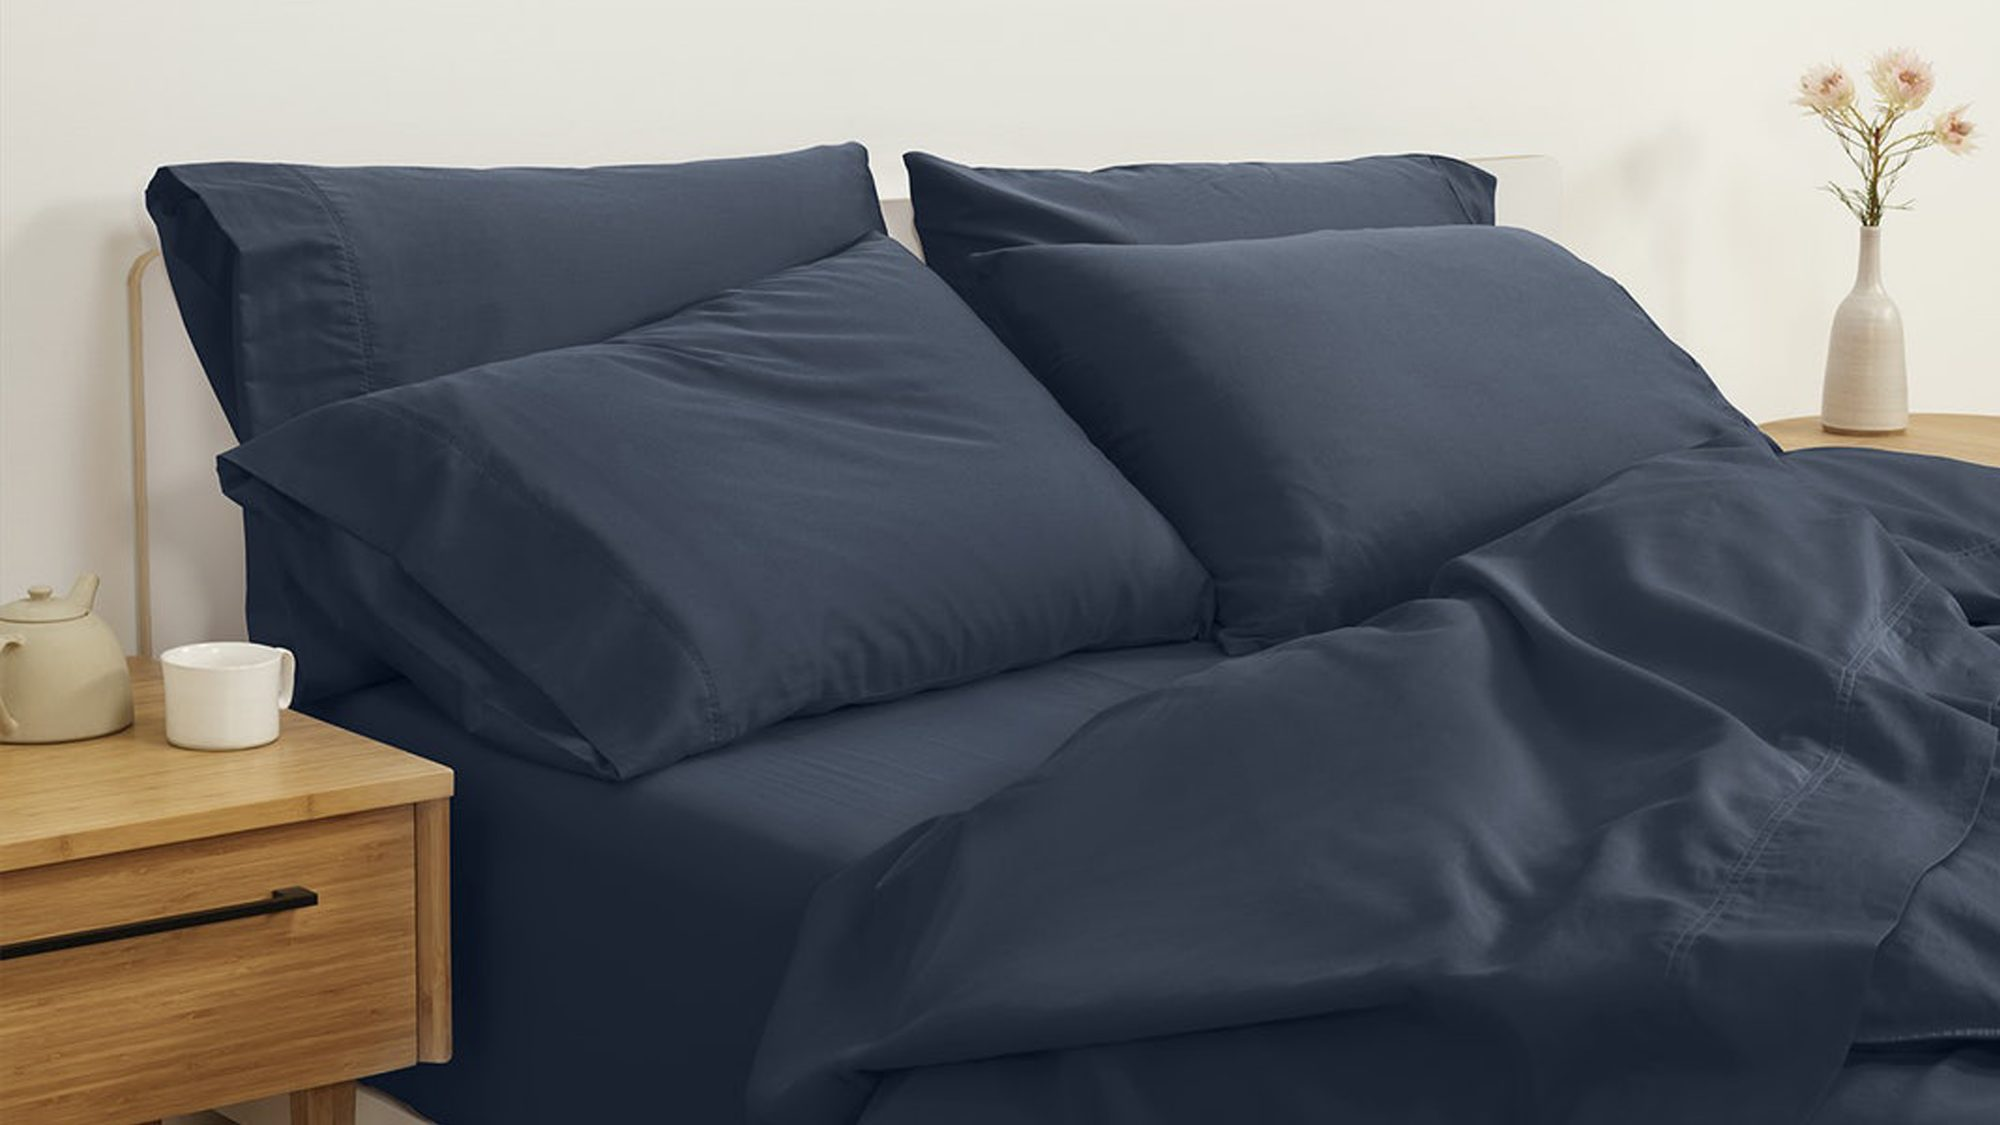 8 most comfortable sheets 2020 best